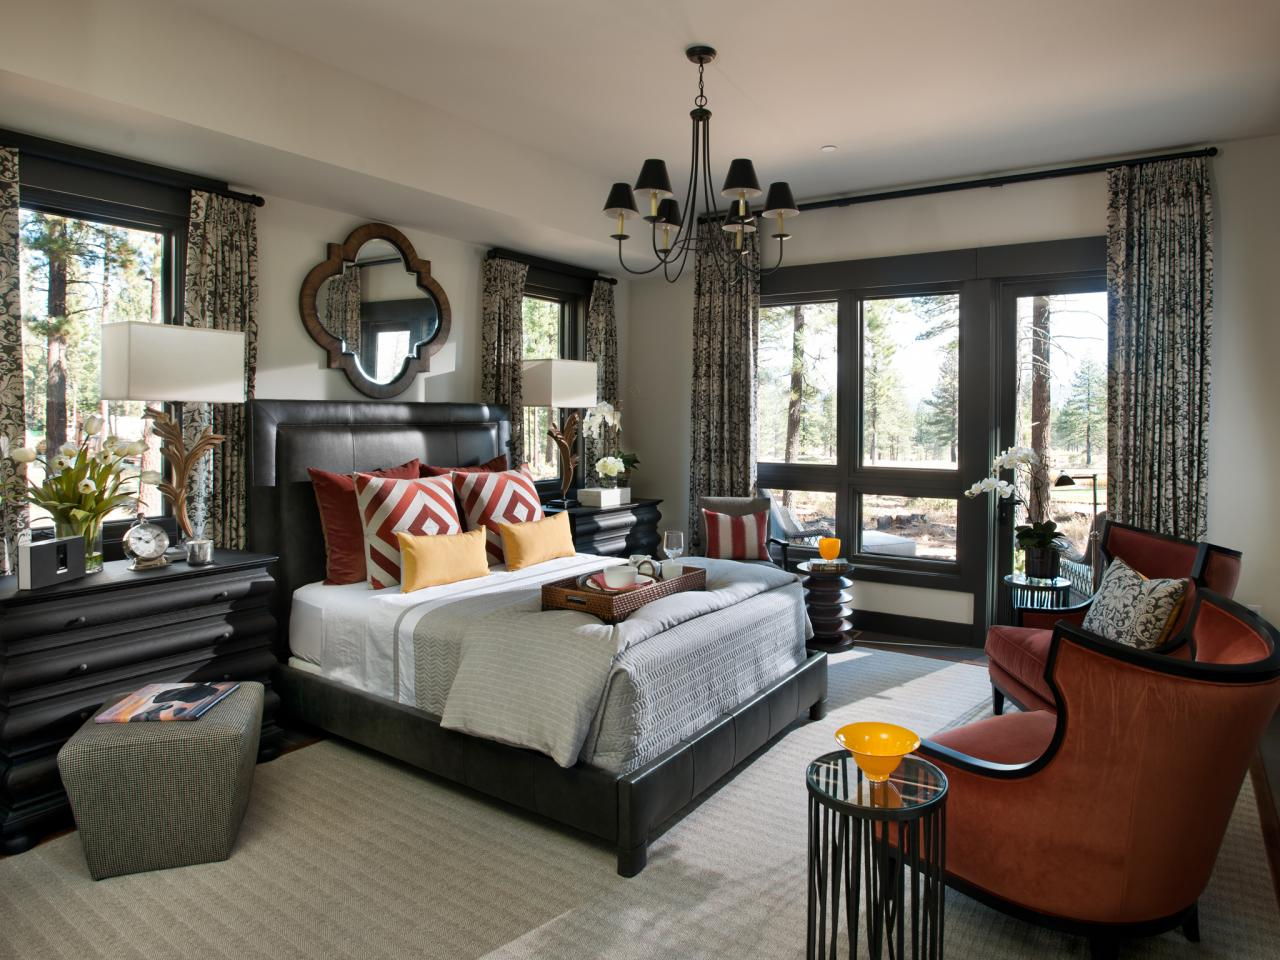 Hgtv dream home 2014 master bedroom pictures and video for Master bedrooms